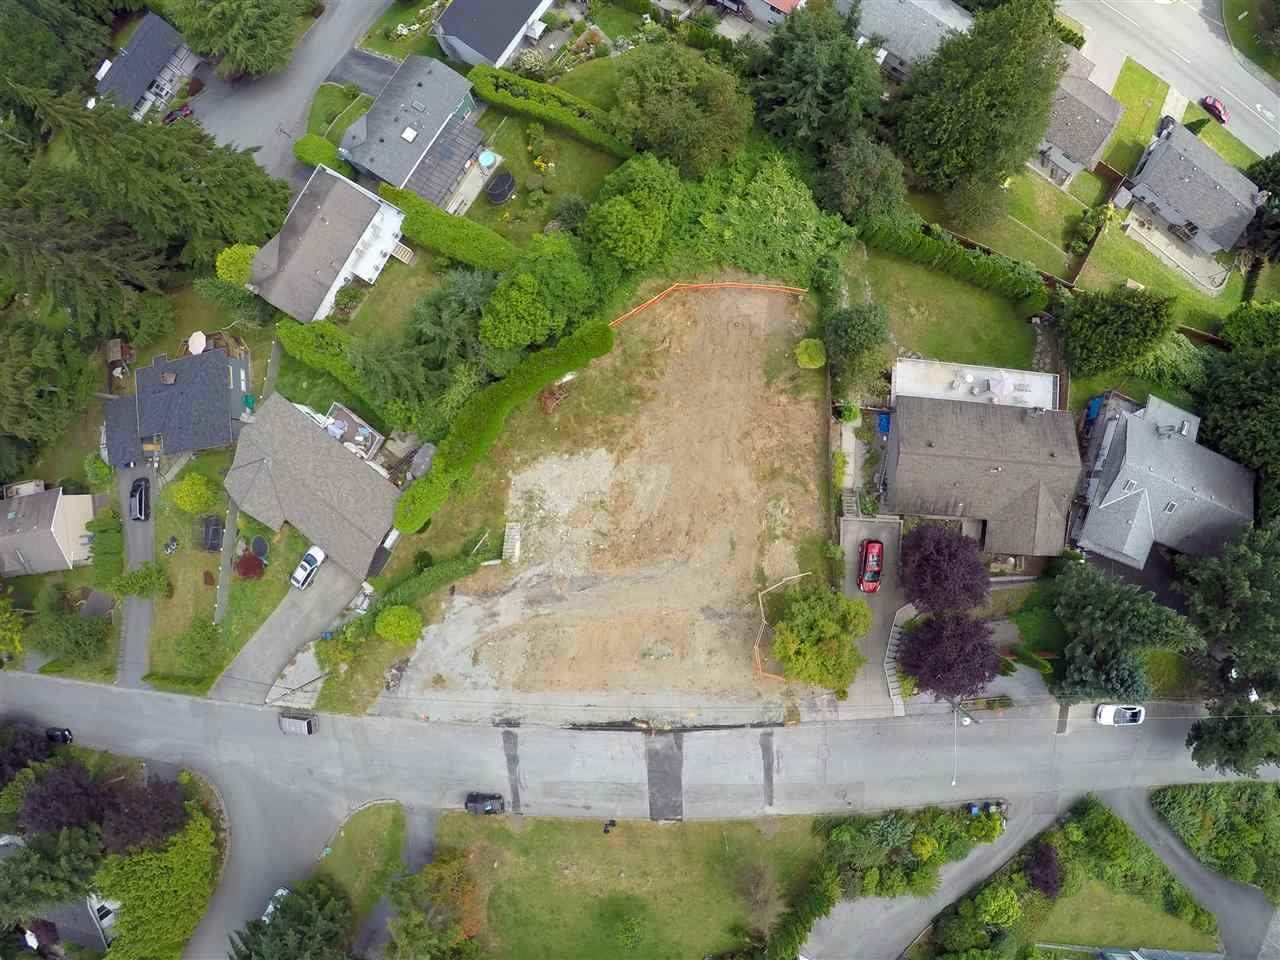 Build your dream home on this massive over 10,500 square feet lot featuring incredible water, mountain & city views. This beautiful lot is located in College Park in Port Moody and allows your imagination to go wild. Plenty of room to build a family  home with huge backyard for the little ones to play in. Close to future transit, shopping & restaurants. Come and take a look! Architectural plans are available!